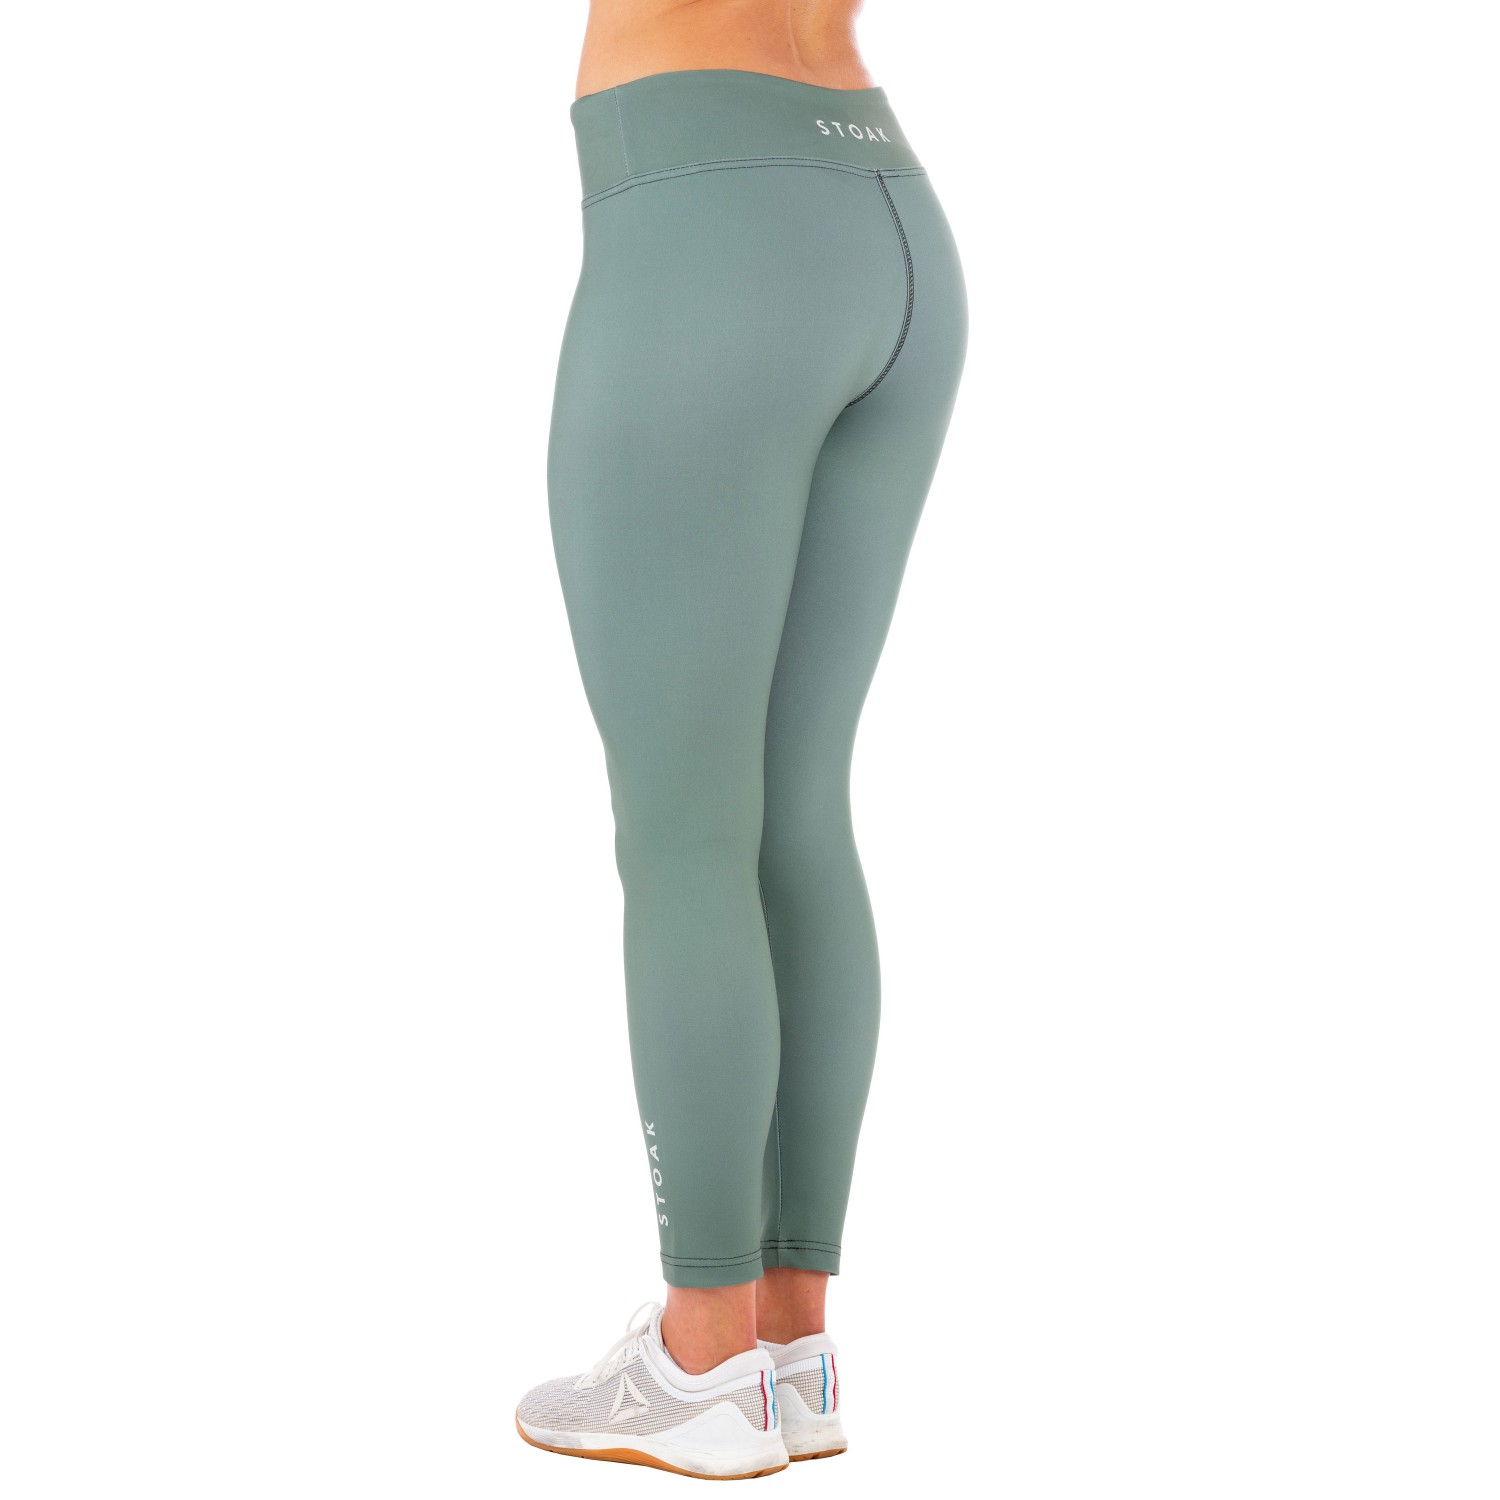 STOAK FOREST Performance Leggings